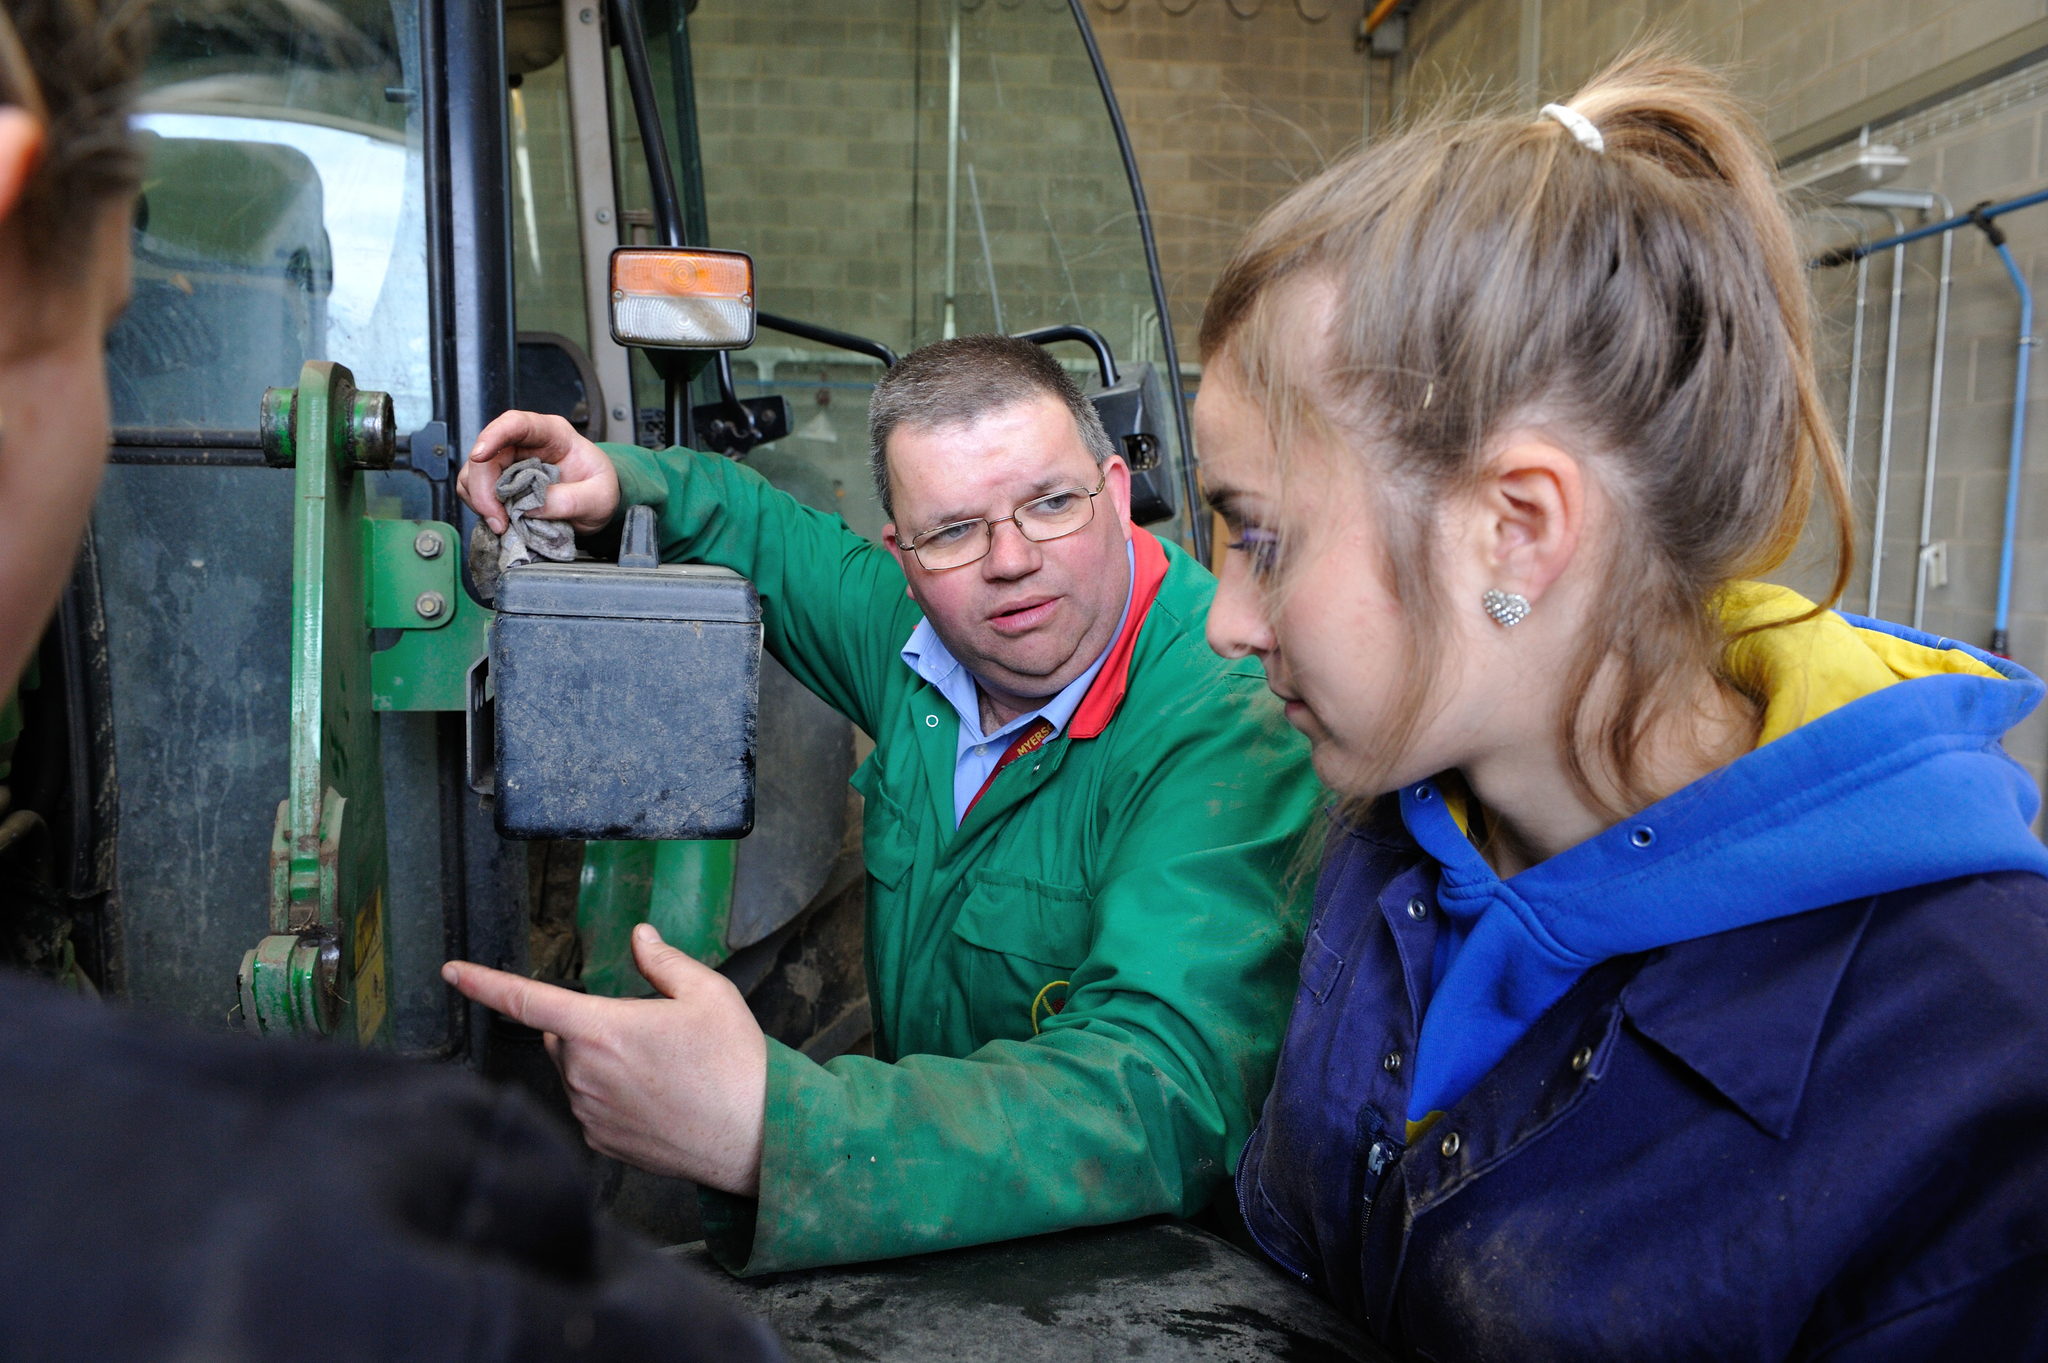 Students learn about tractor engines